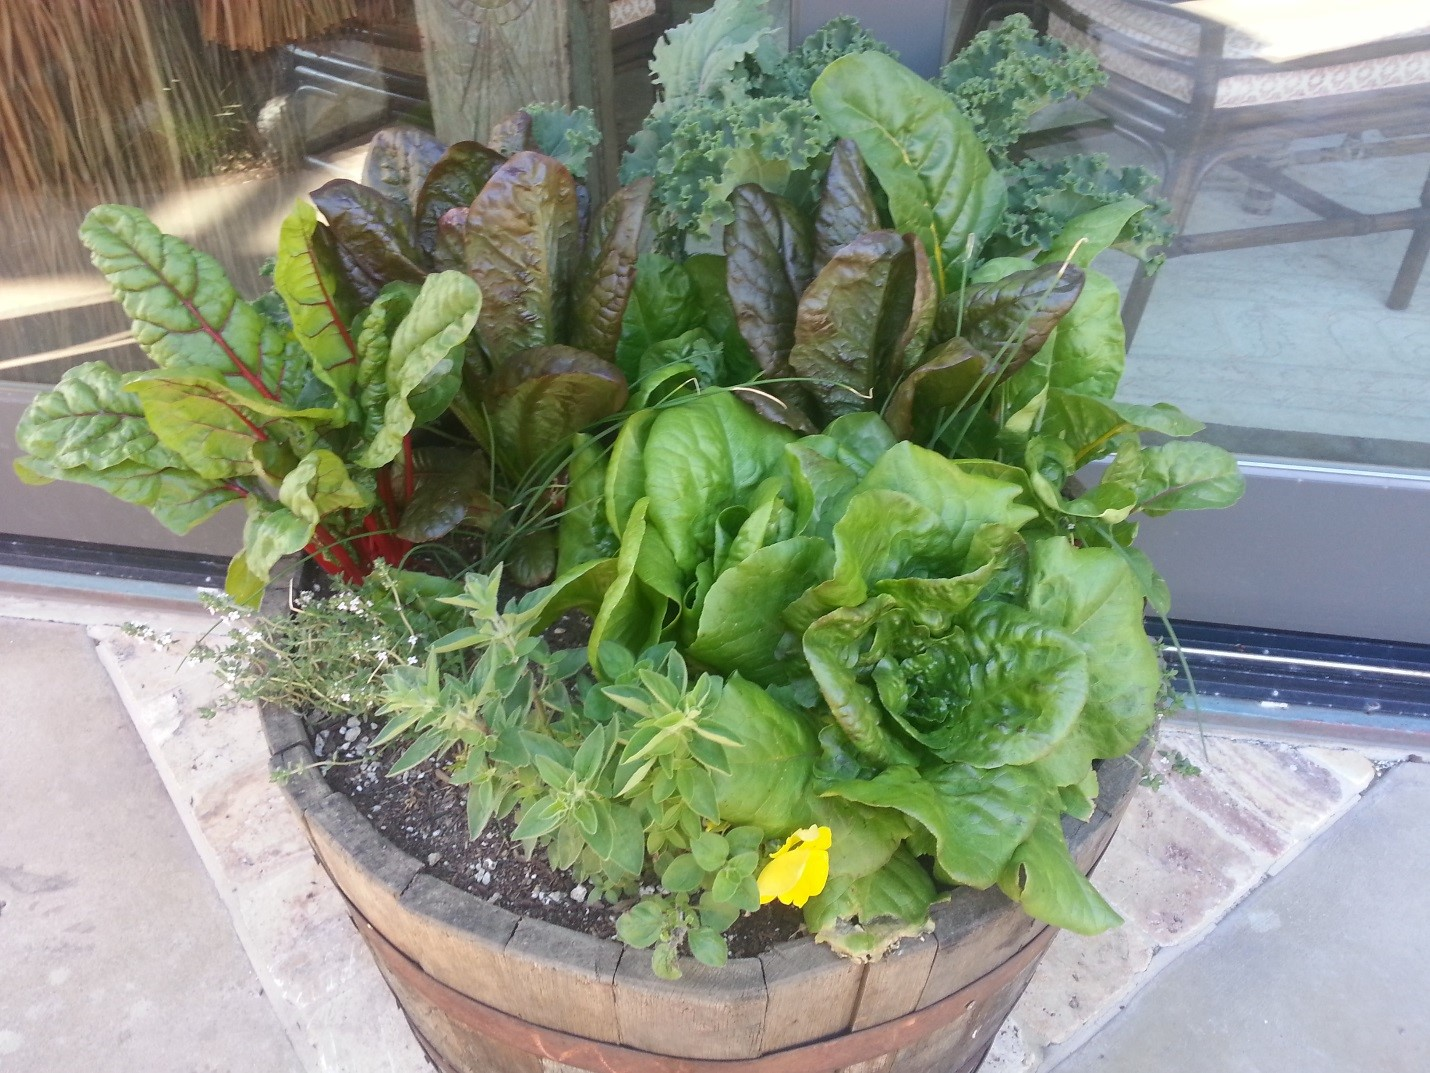 Any size container will do to grow food in your own backyard. Here is a whiskey barrel full of winter herbs, flowers, & greens. Happy growing and eating from your backyard this winter! Contact us today to help design, build, or prepare your gardens for seeding and planting.